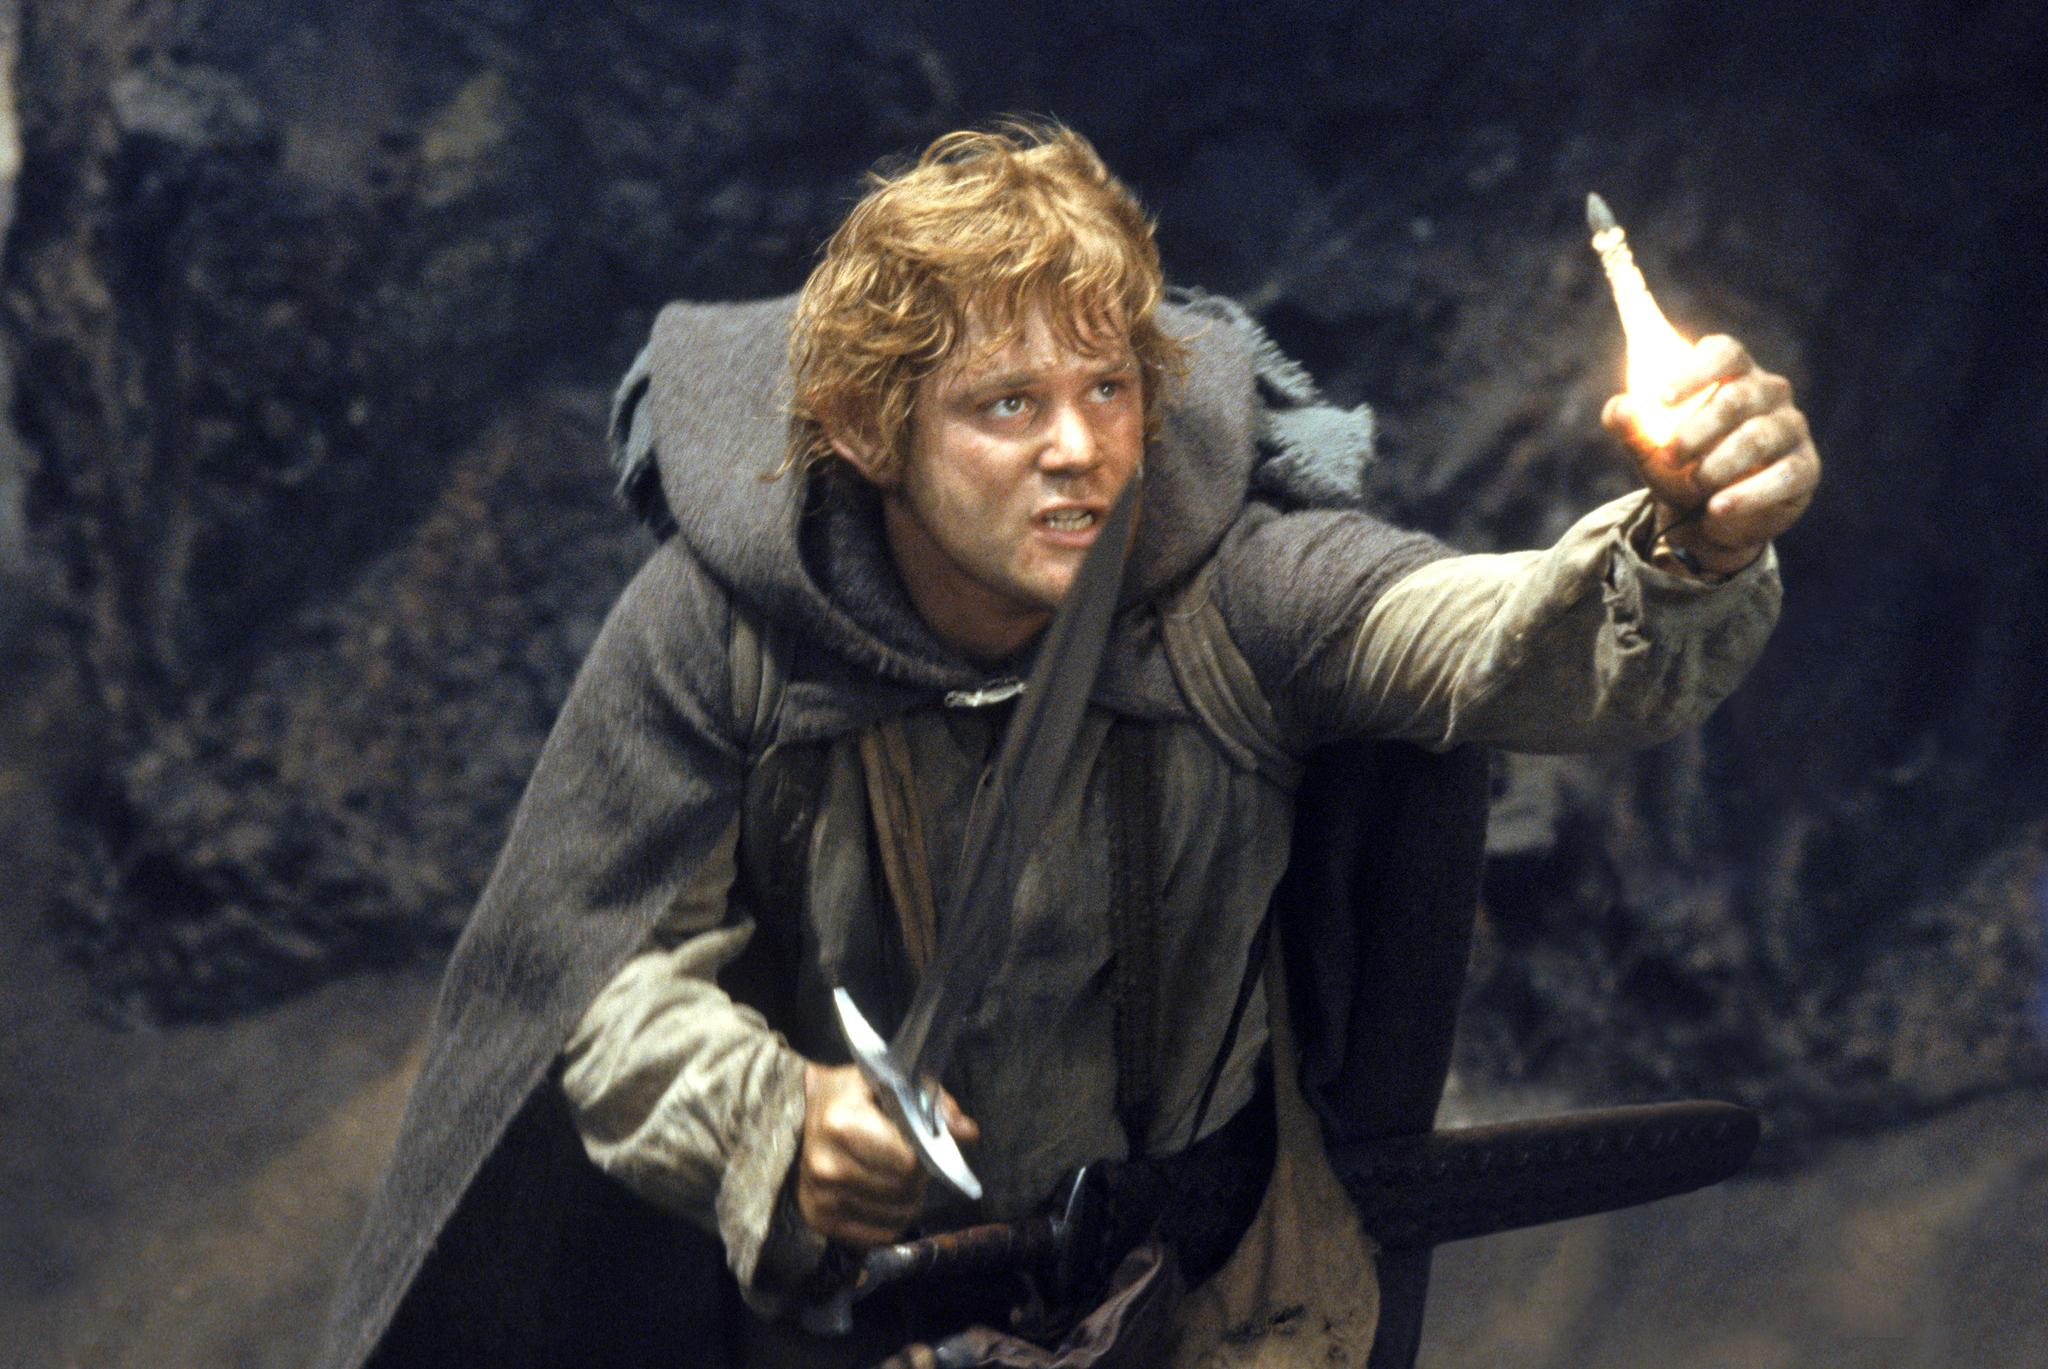 The Lord of the Rings (2001-2003)